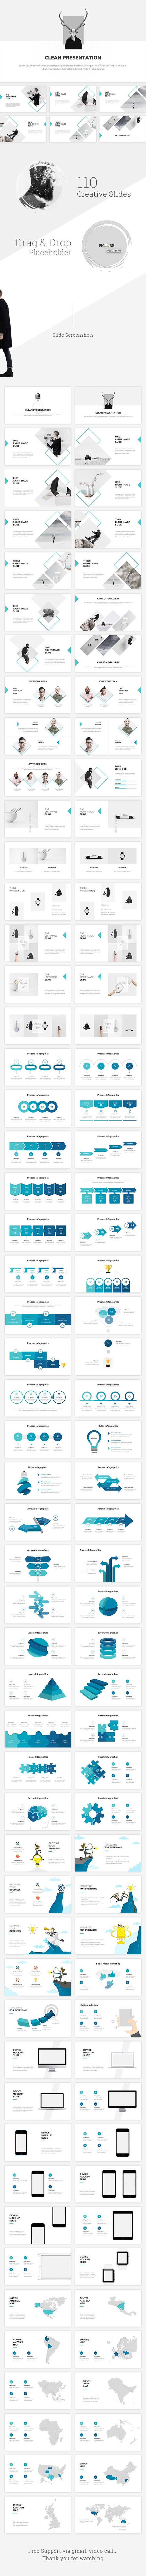 Clean Powerpoint Template - Business #PowerPoint Templates Download here: https://graphicriver.net/item/clean-powerpoint-template/20038727?ref=alena994